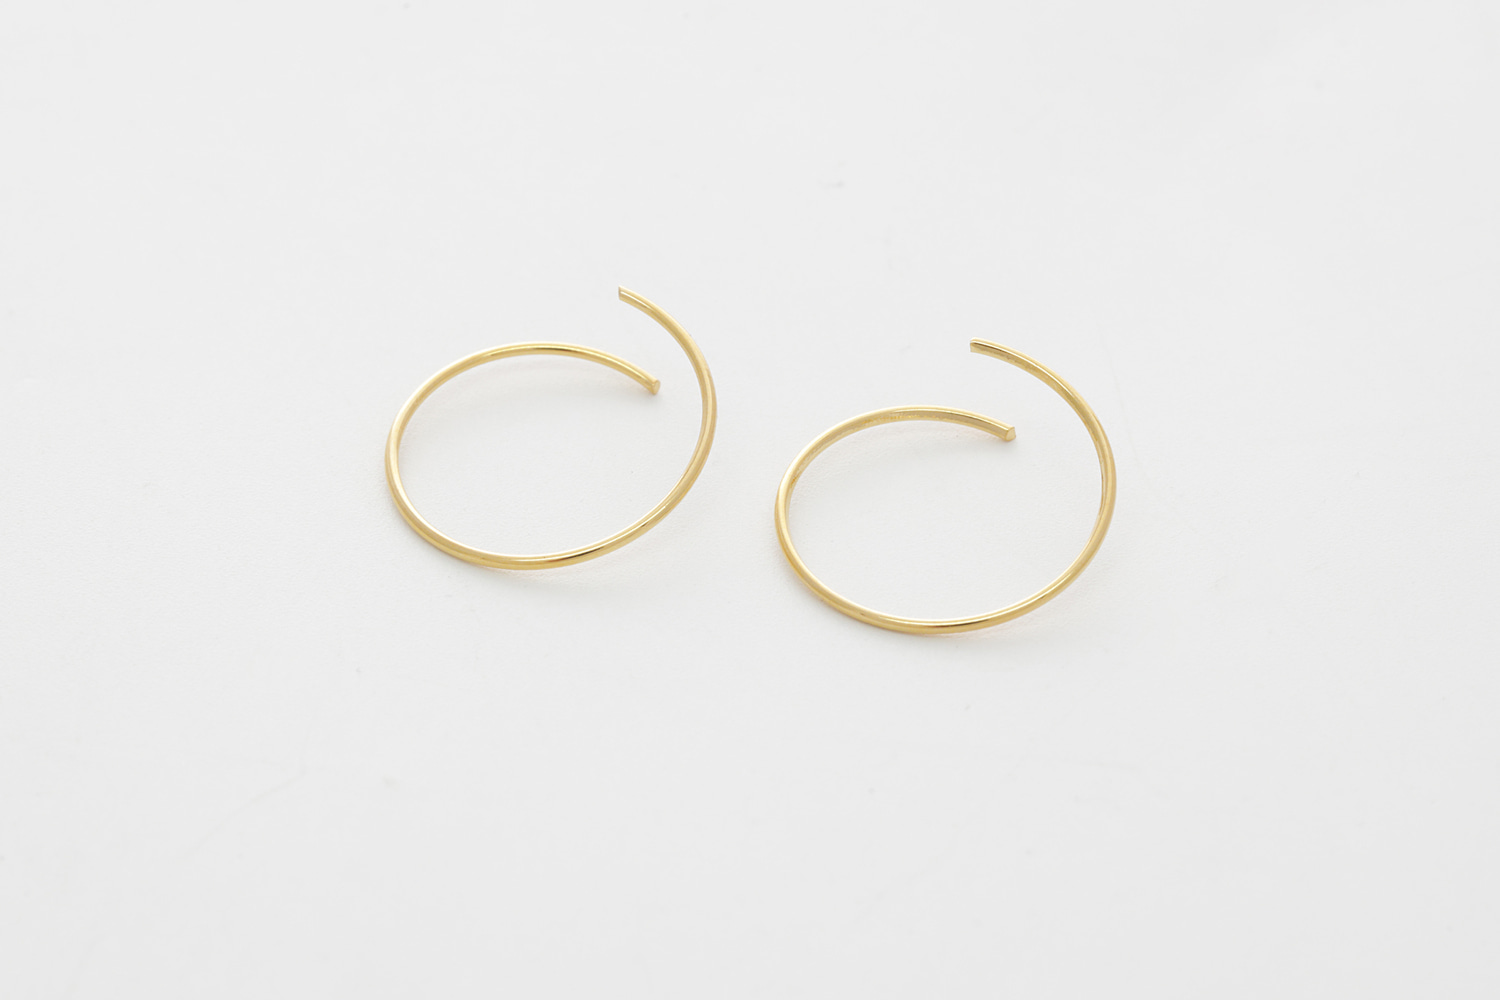 [S30-P3] Little Wire Hoop, Brass, Nickel free, Handmade jewelry, Hoop earrings, Wire earrings, Simple earrings